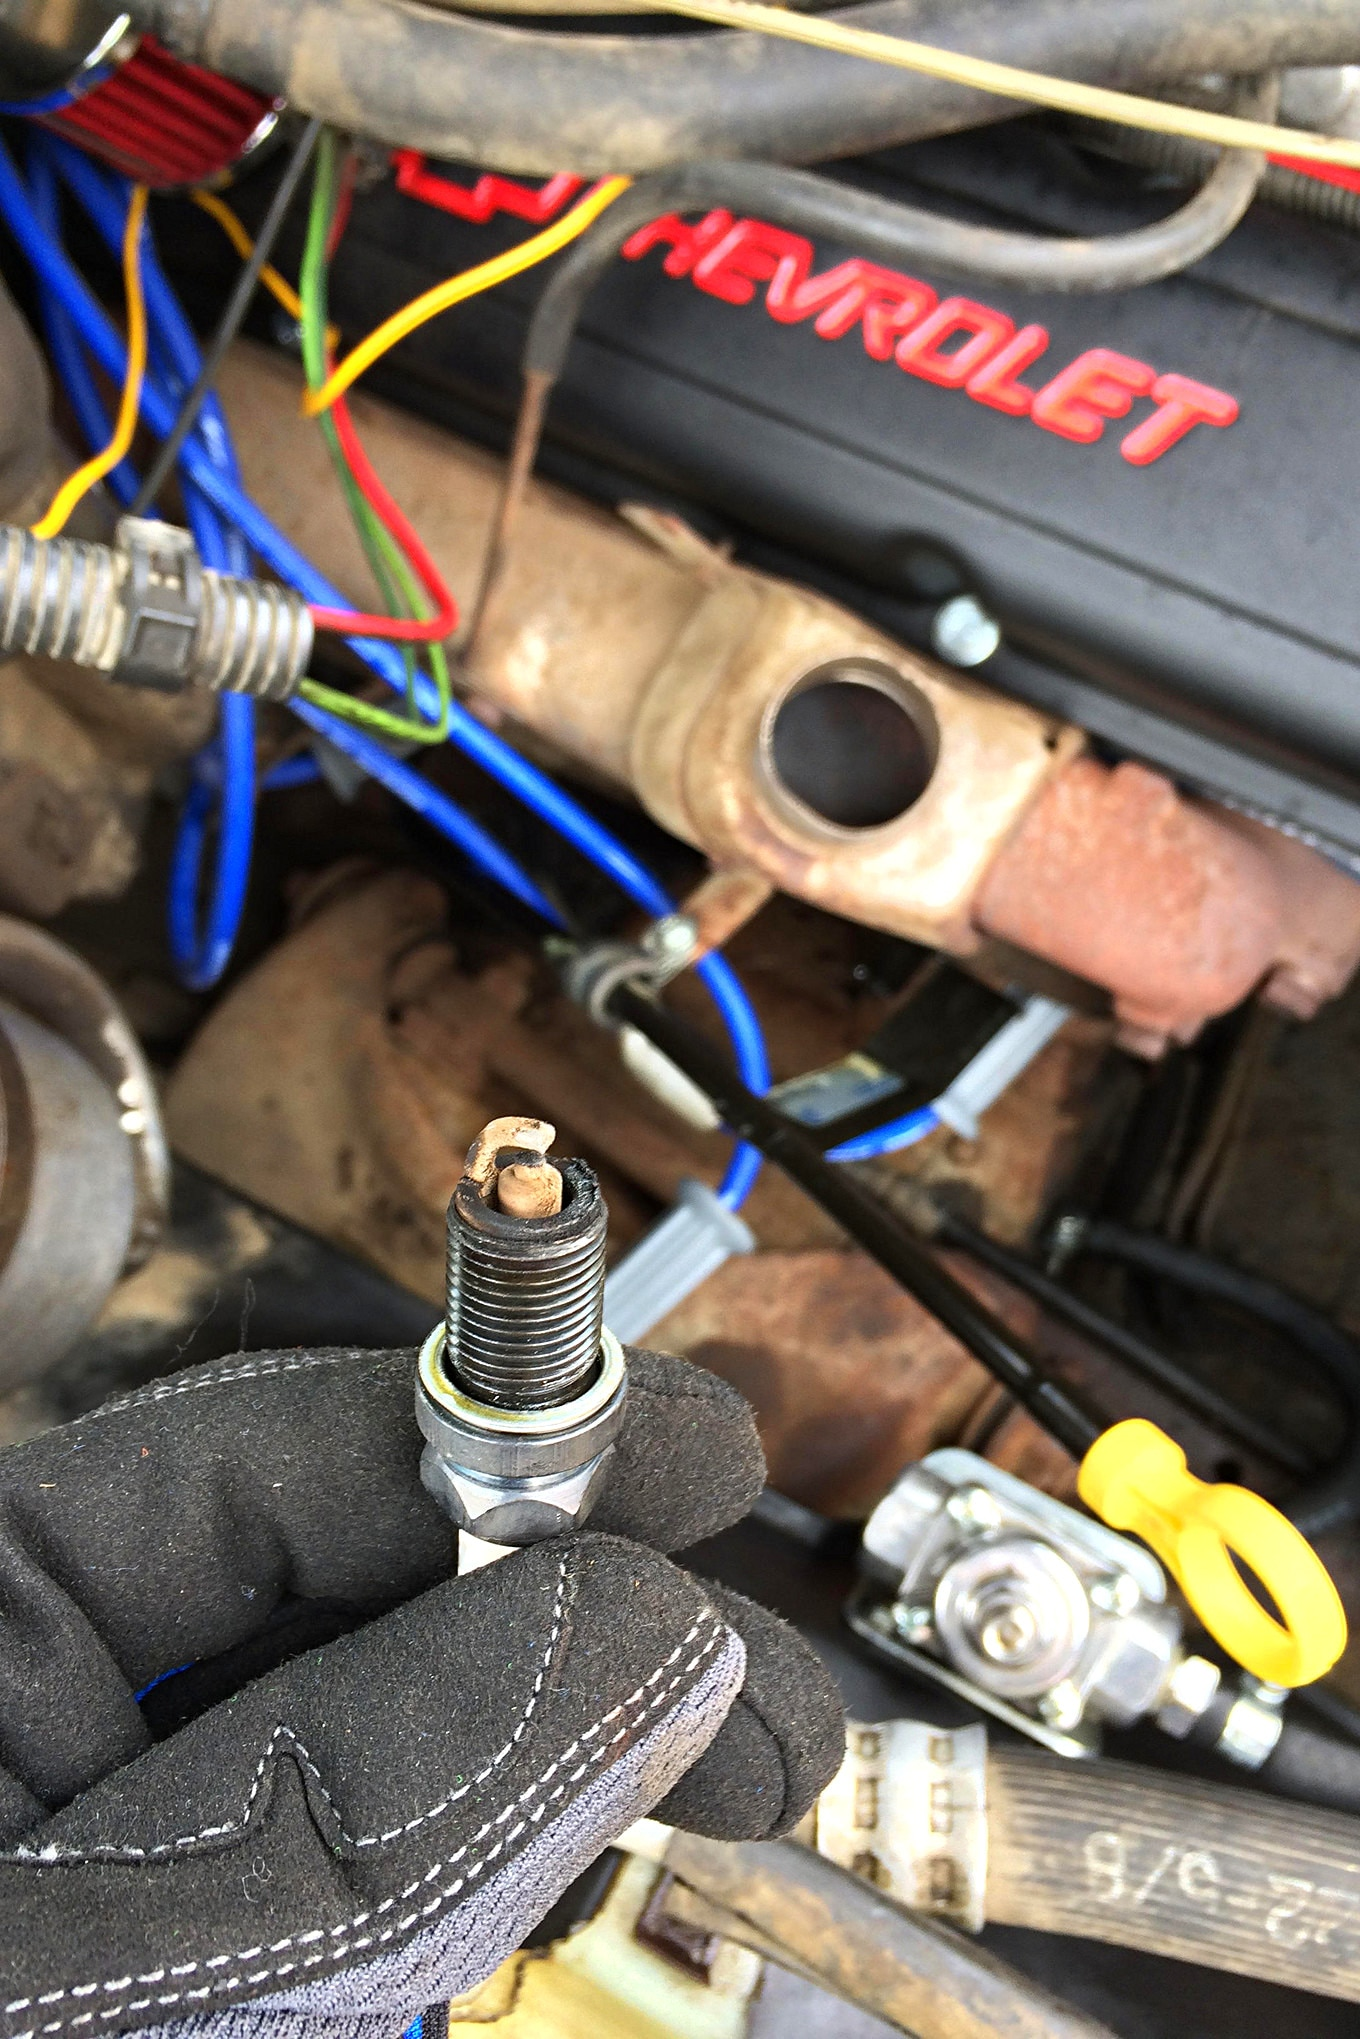 My concerns growing, we stopped at a parts store to buy a spark-plug socket and checked the plugs. The oily buildup and deposits weren't encouraging.